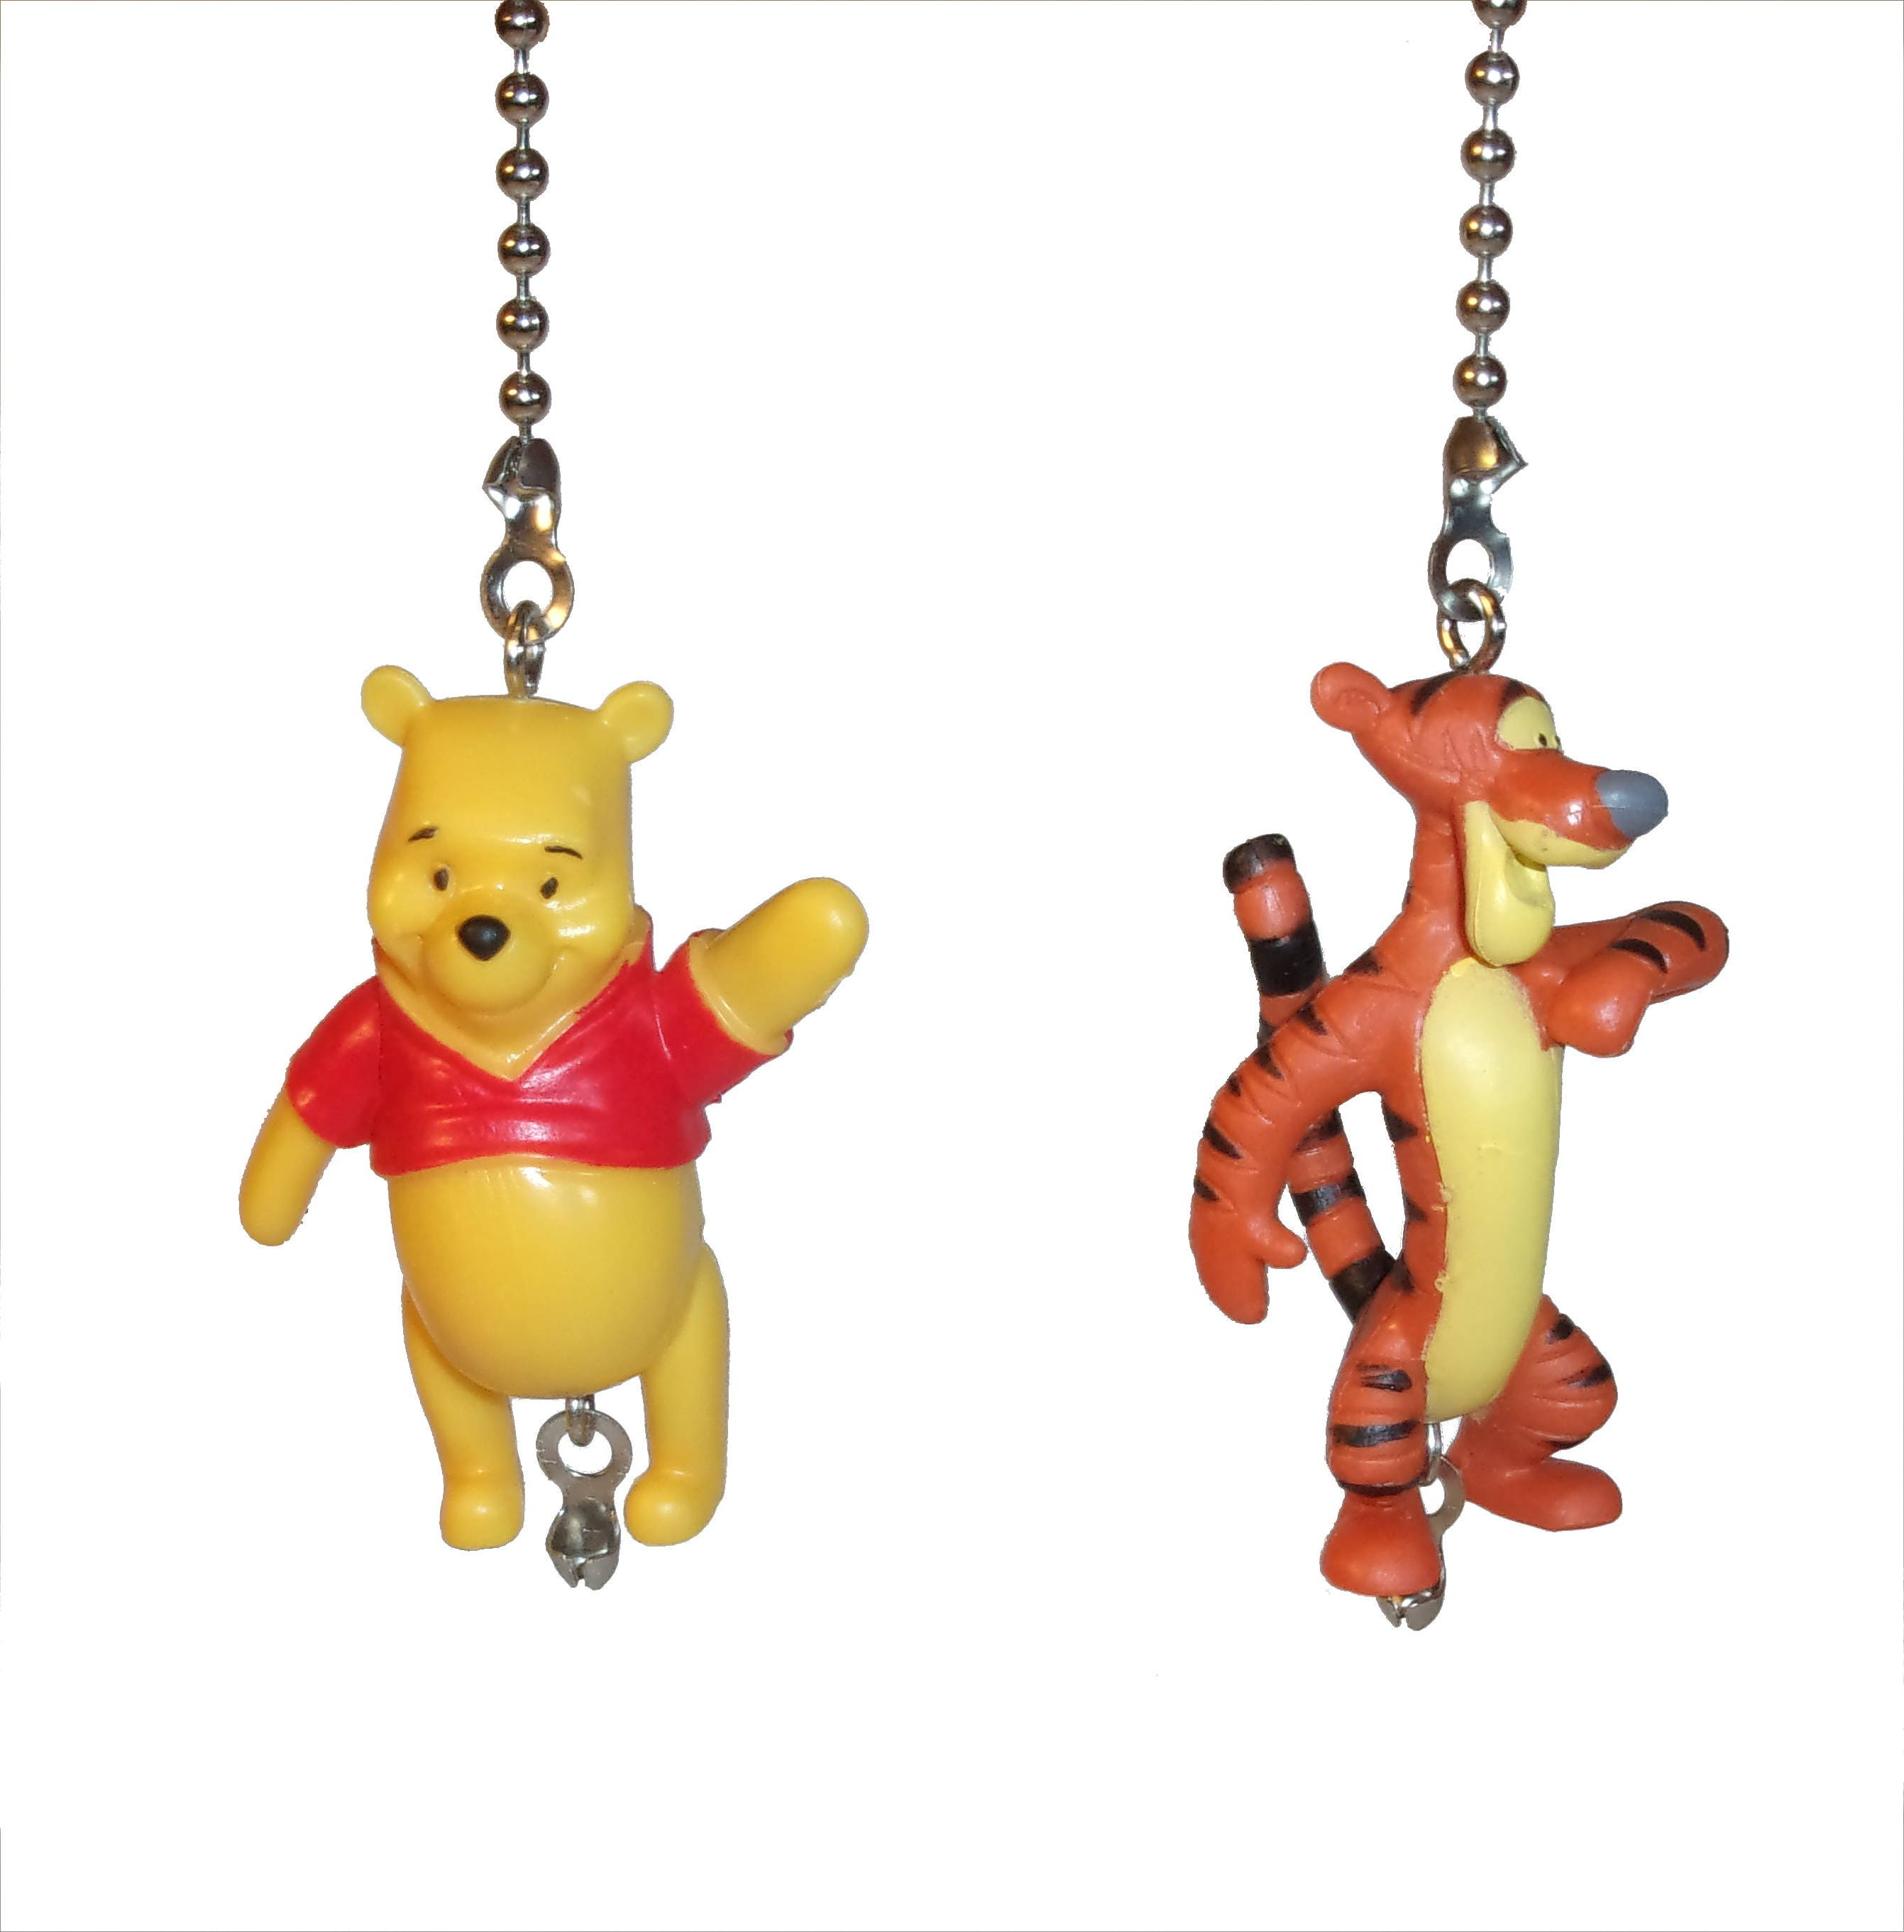 Winnie the pooh ceiling fan pull eeyore tigger piglet nursery winnie the pooh ceiling fan pull eeyore tigger piglet nursery decor kids room family room gift for kids girls boys baby shower mozeypictures Gallery